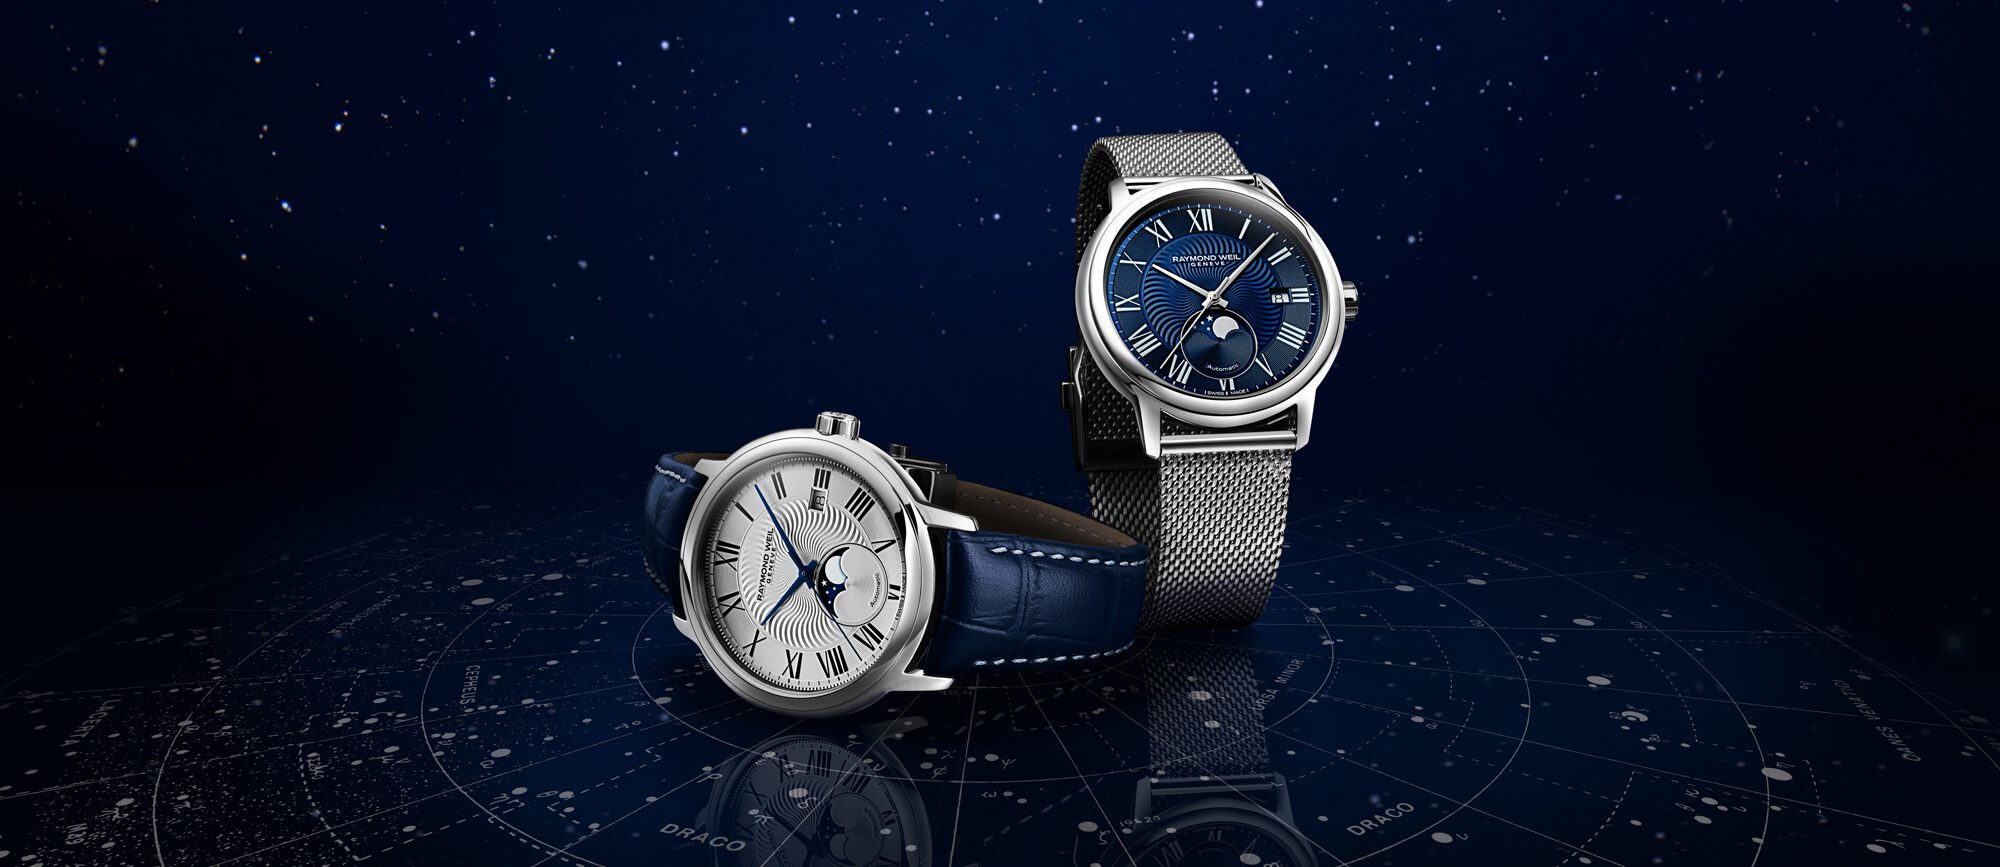 042f0a76a1a Search. 🔍. Maestro Moon Phase Blue Leather blue dial Watch RAYMOND WEIL